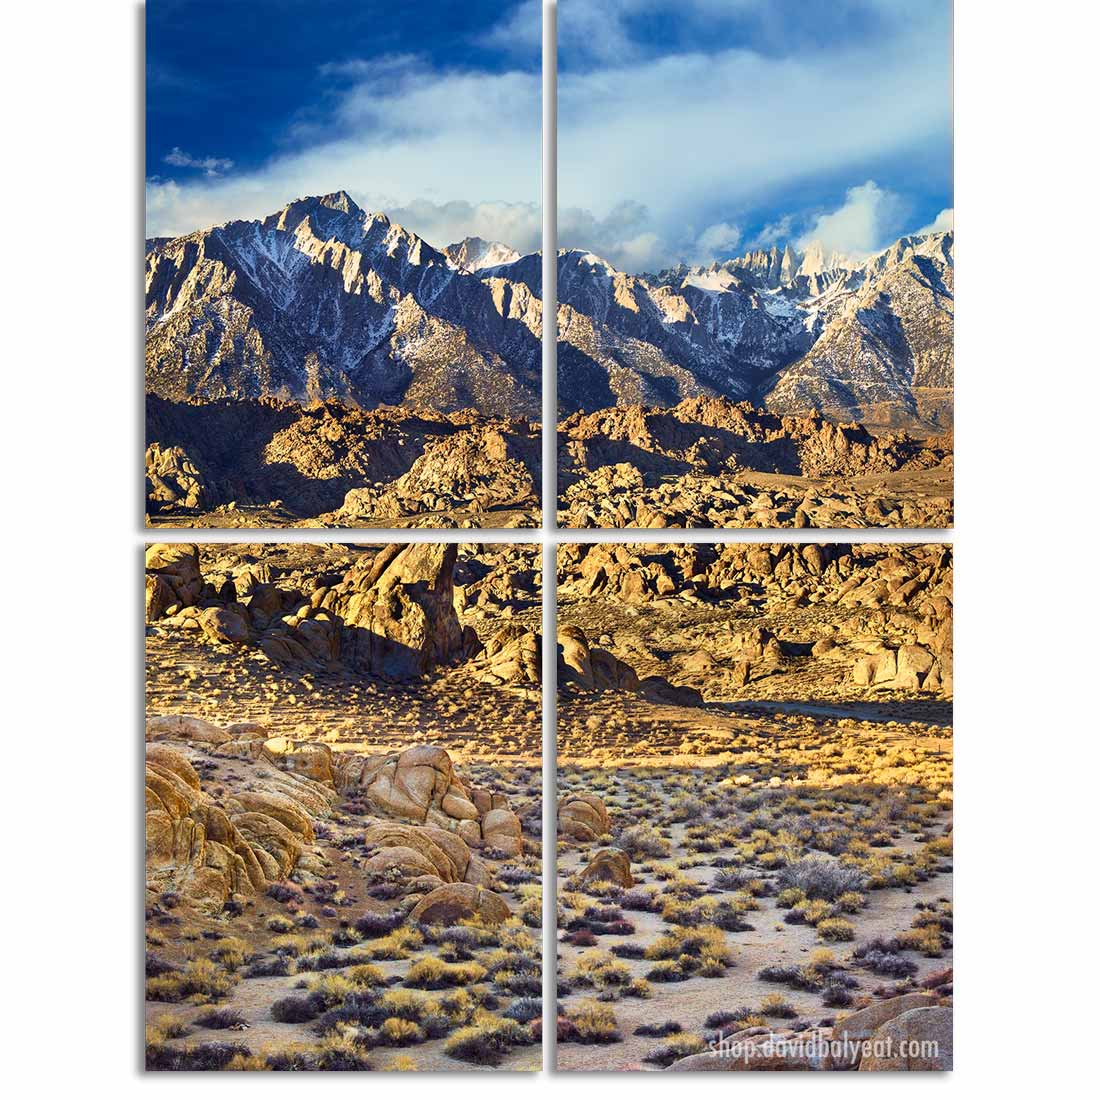 Awareness 4-panel quadriptych wall artwork